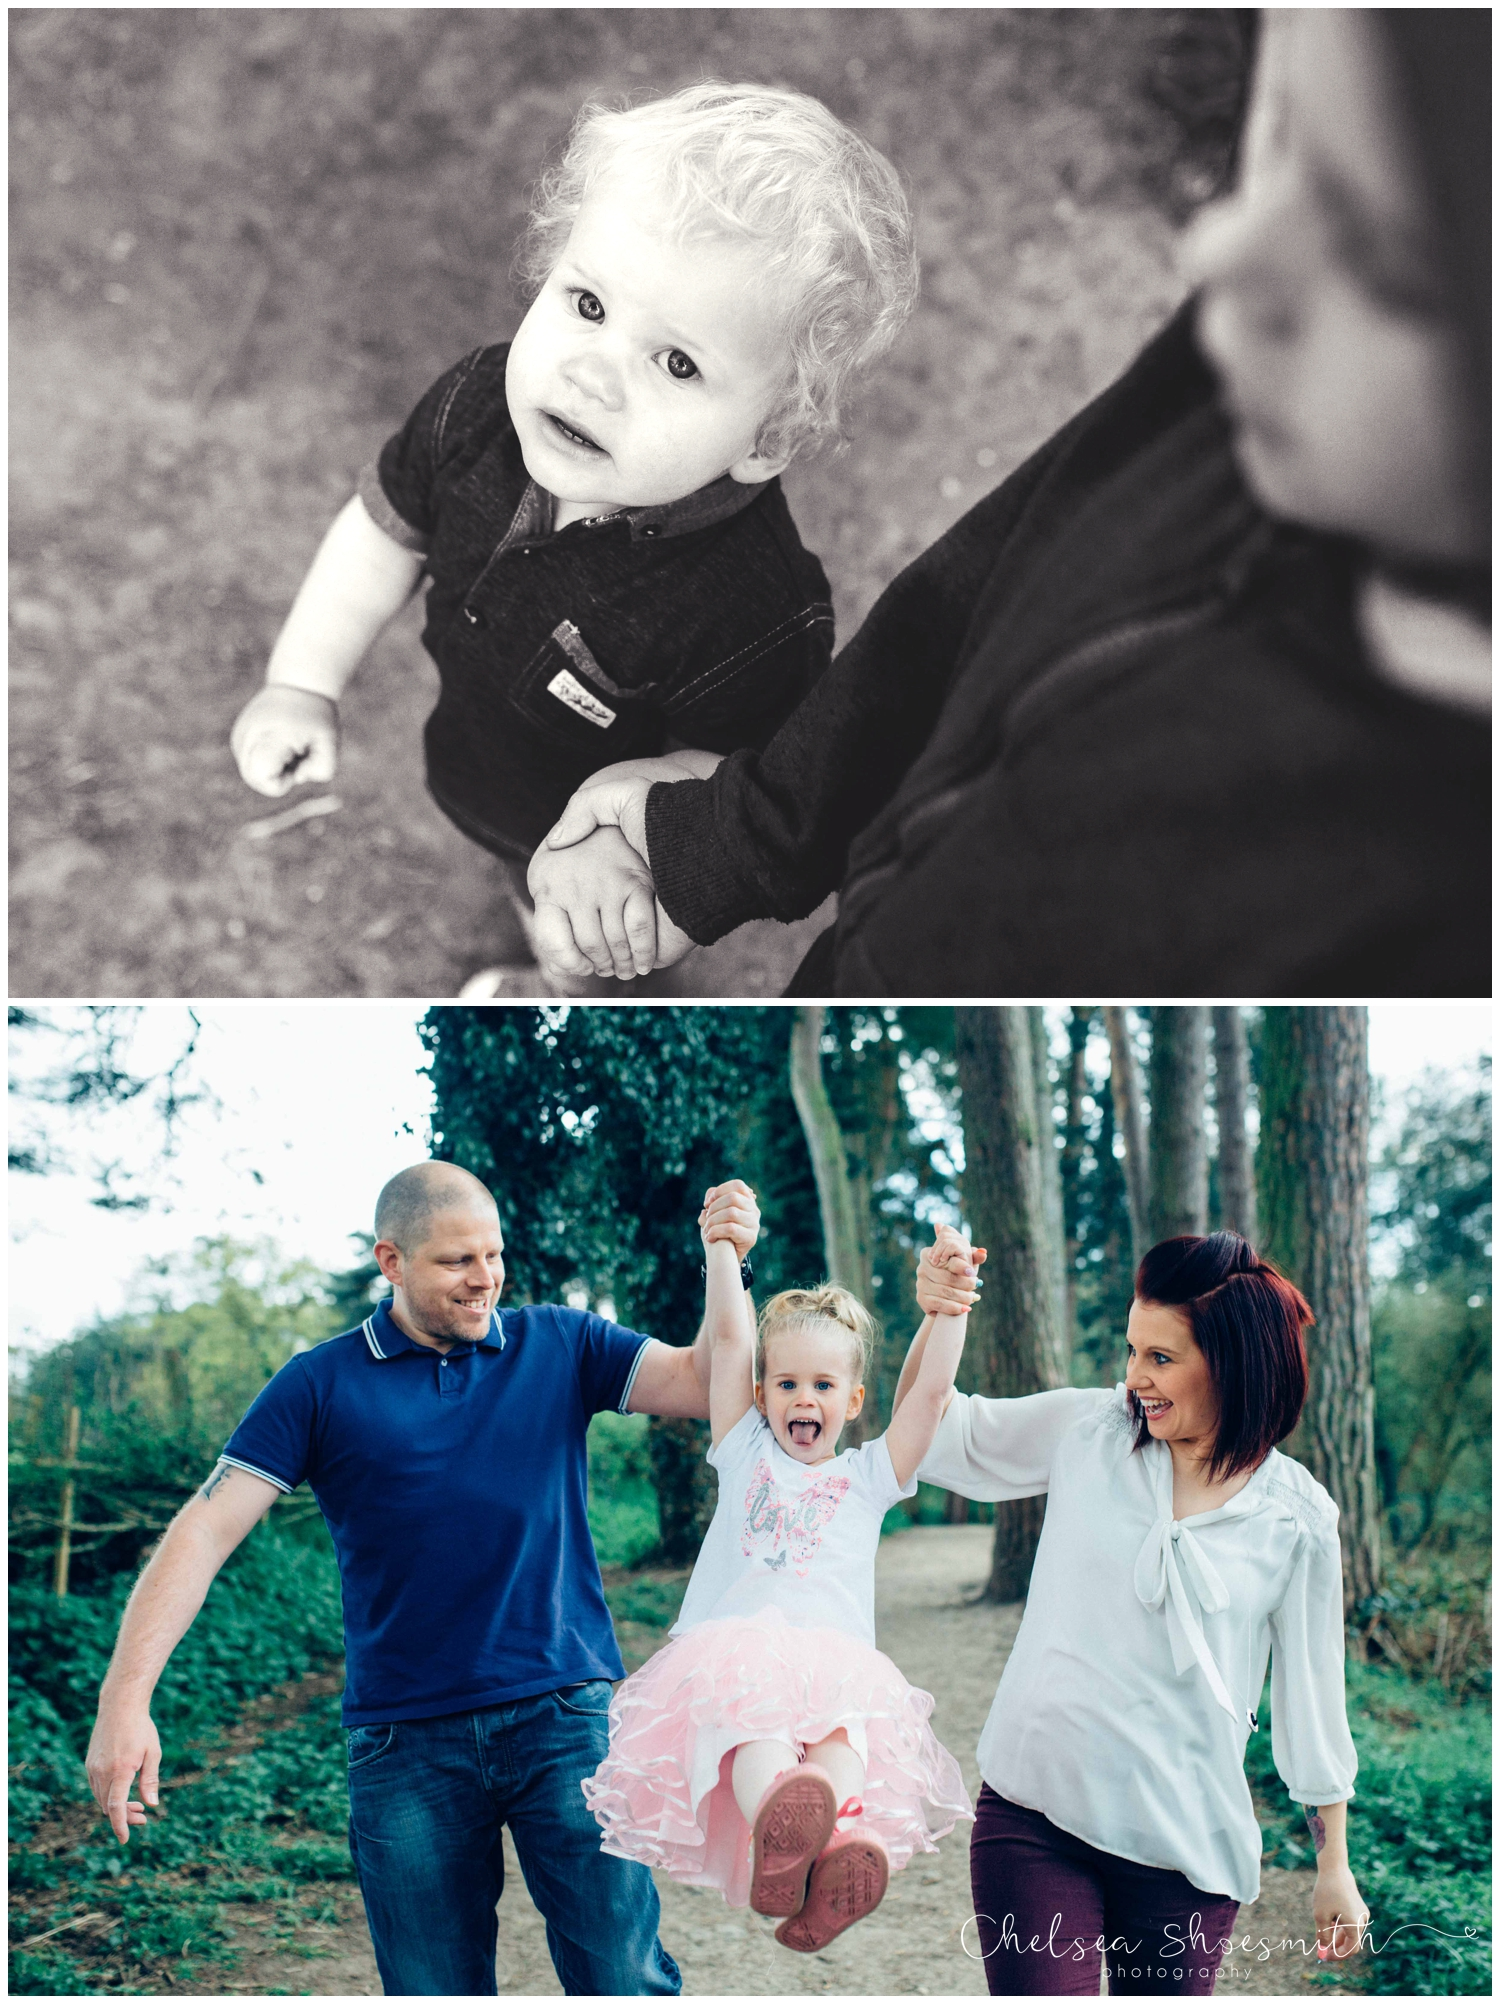 (57 of 72) Rigby Family Portrait Photography Quarry Bank Mill Styal Chelsea Shoesmith photography